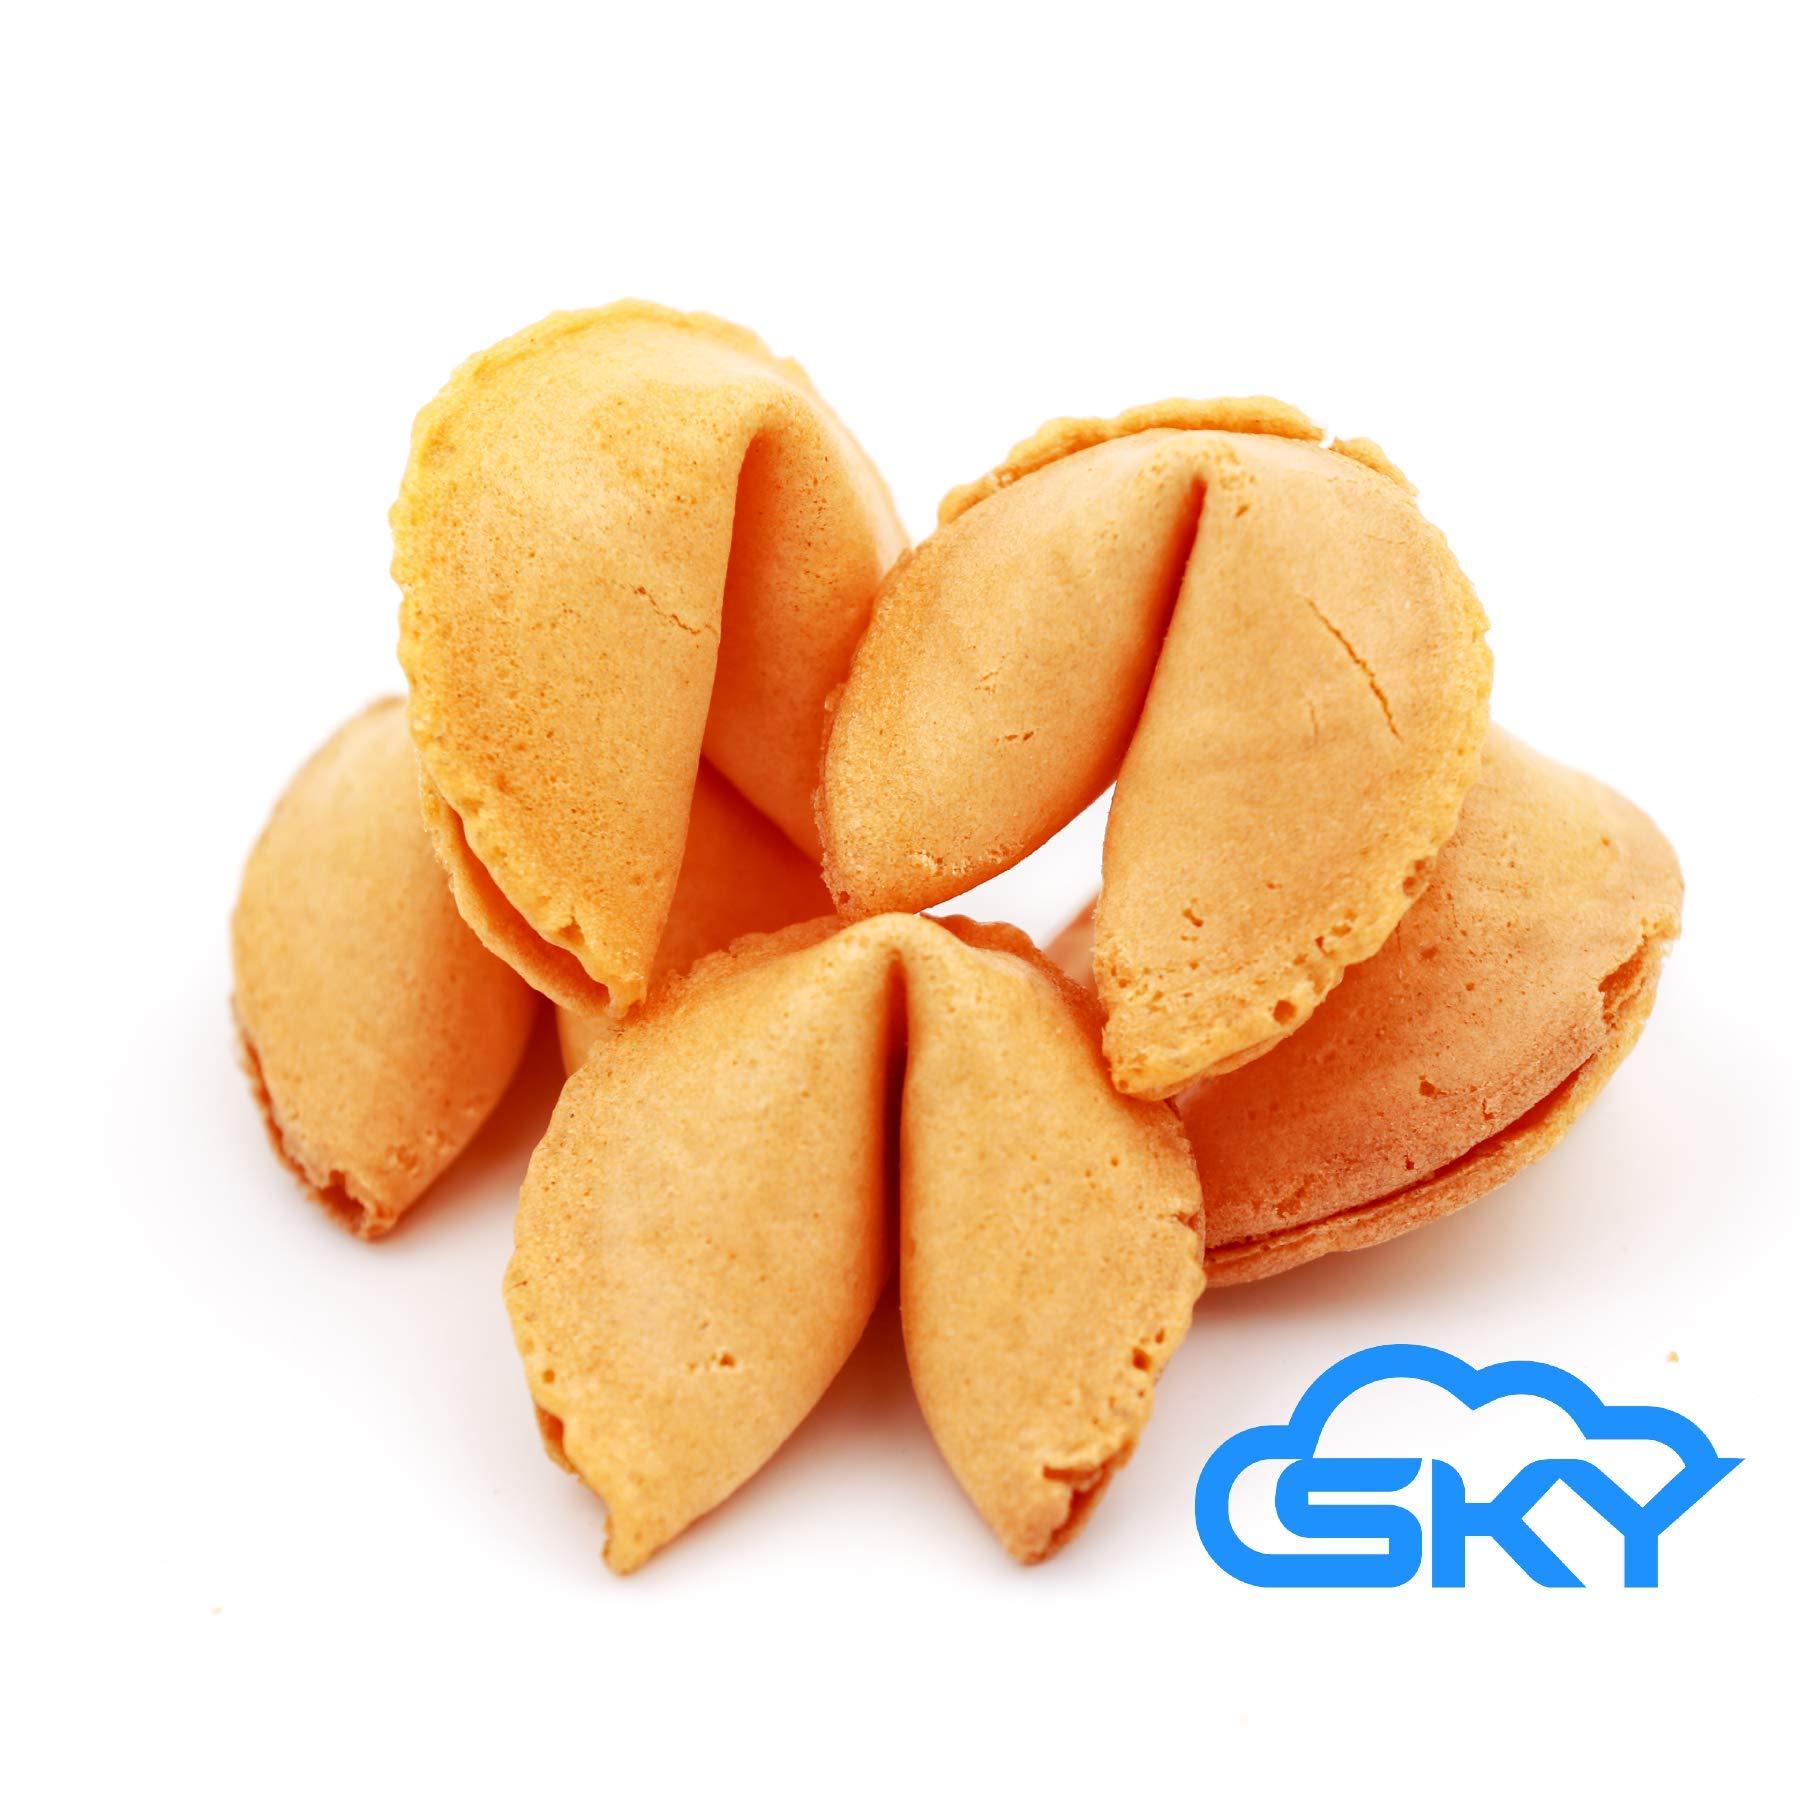 Sky Premium and Fresh Fortune Cookies Individually Wrapped, Bulk 100 Pcs, Perfect for Snacks, Lunch, Picnic, Birthdays, Graduation, Parties | Product of USA by Sky Ecommerce (Image #2)